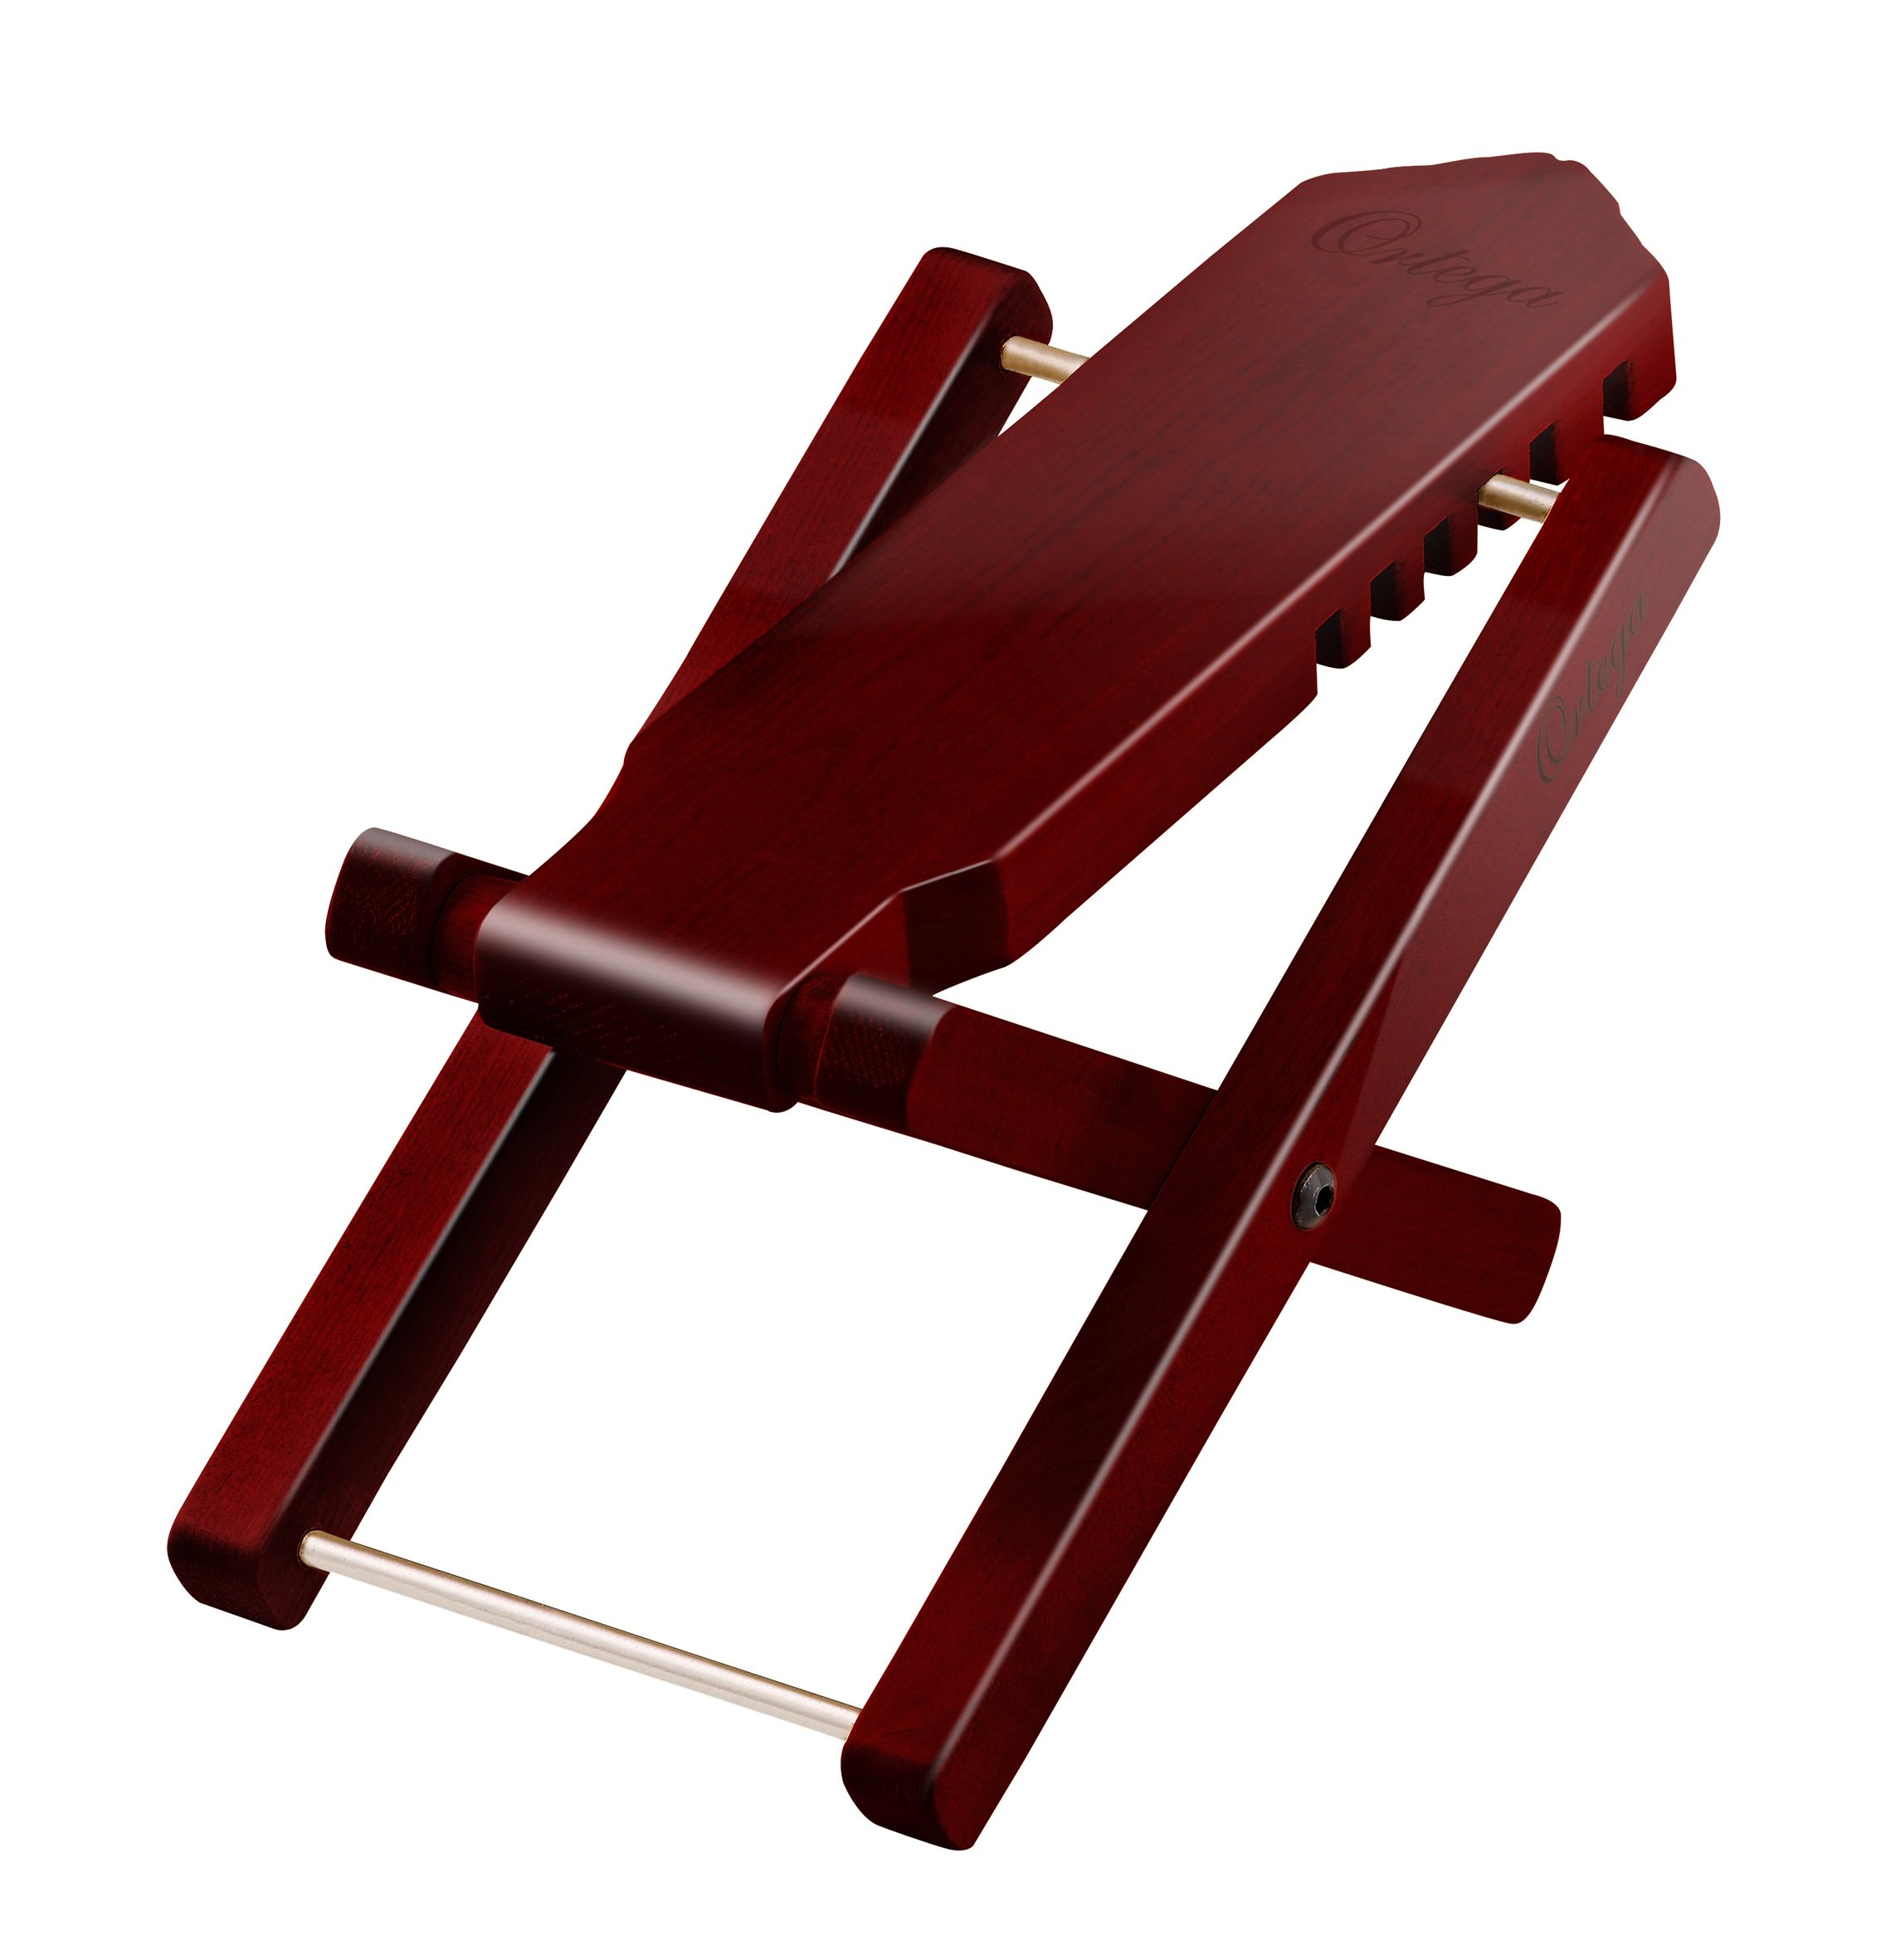 Ortega Guitars OWFS-1WR Wooden Wine Red Finish Foot Stool with 5 Adjustable Height Settings